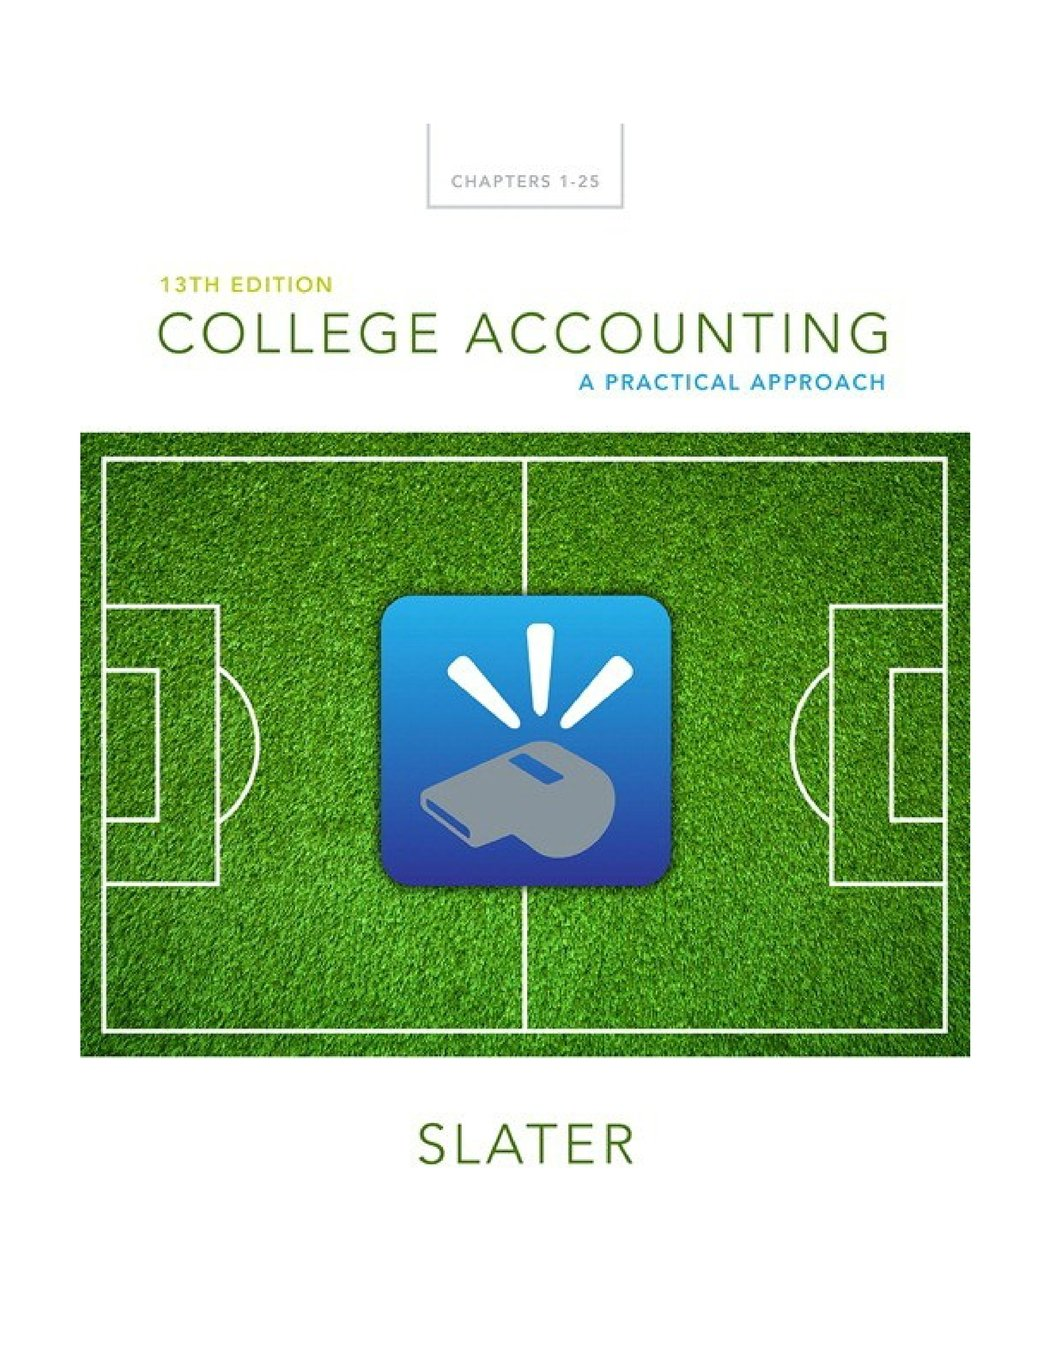 College accounting a practical approach 13th edition jeffrey college accounting a practical approach 13th edition jeffrey slater 9780133791006 books amazon fandeluxe Image collections